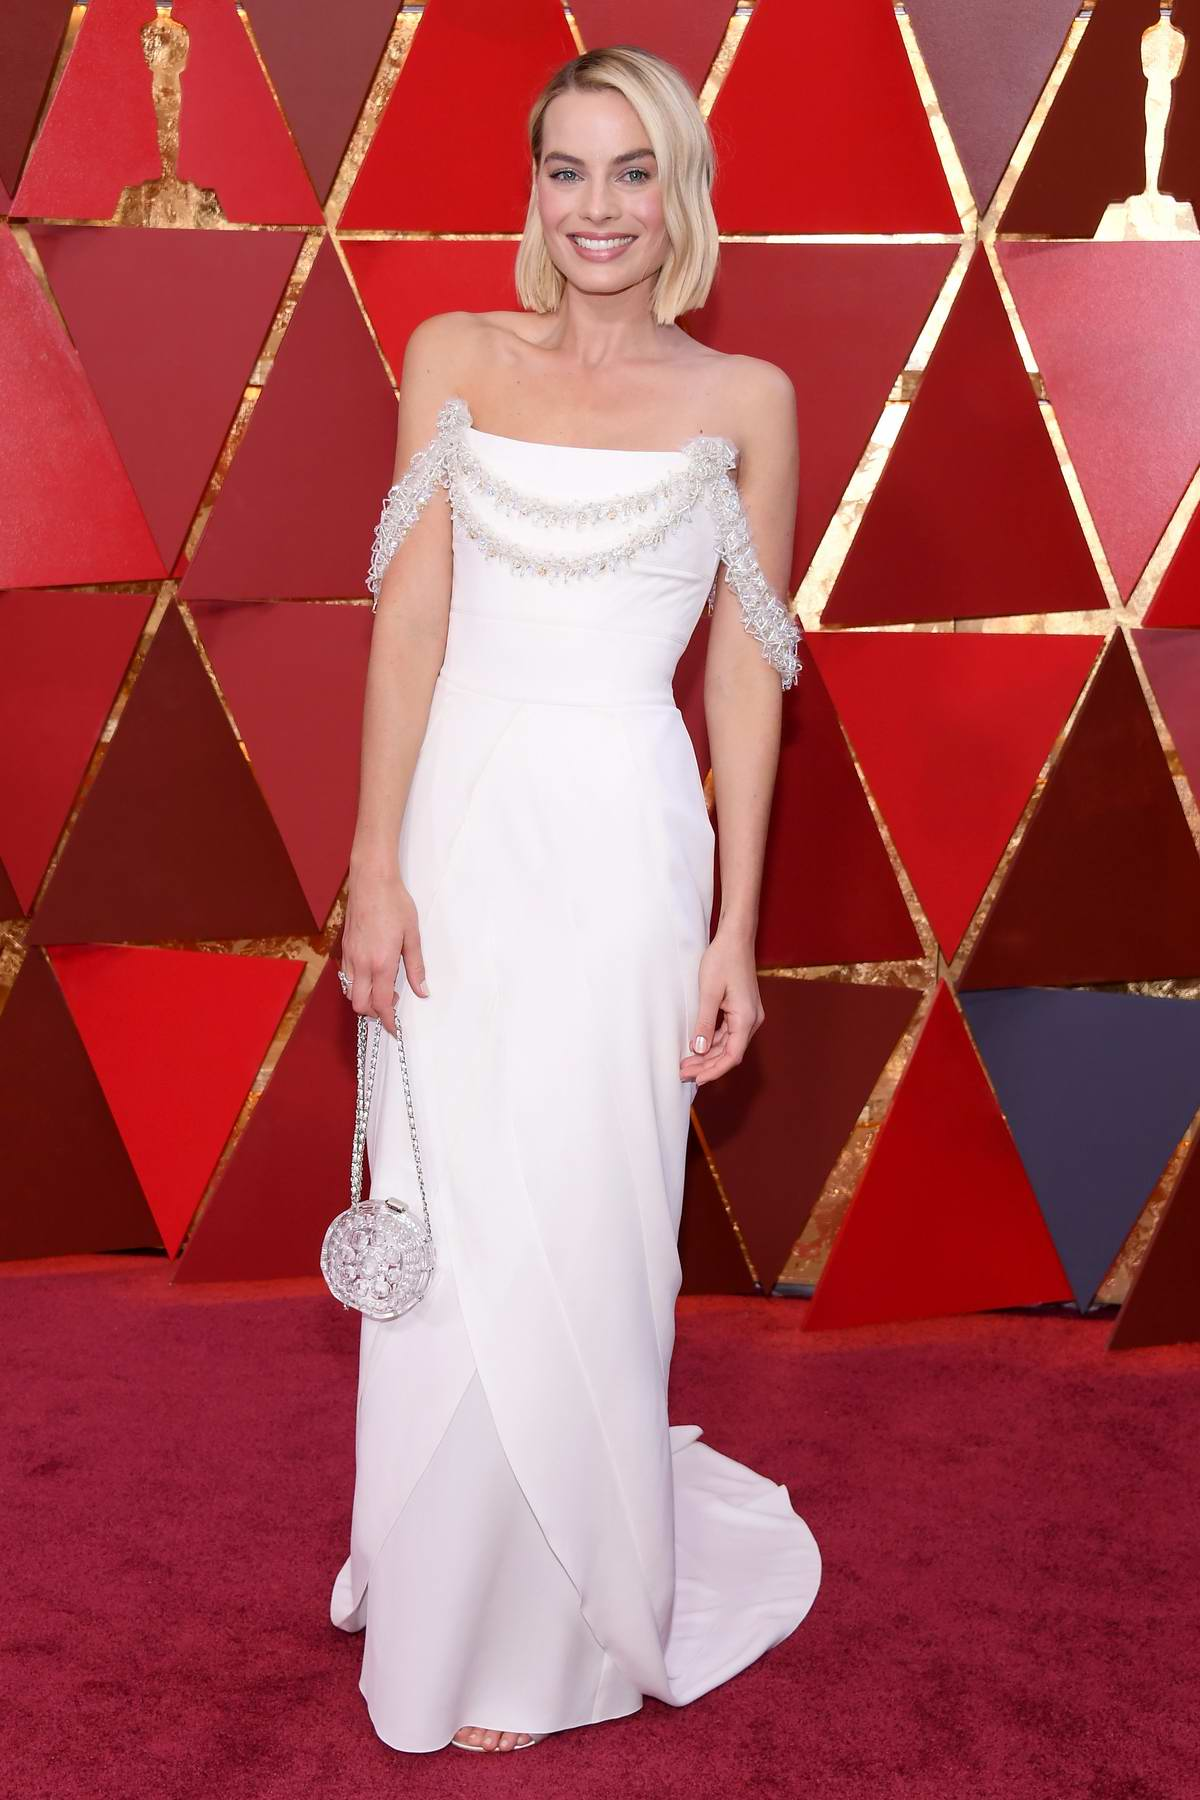 Margot Robbie attends The 90th Annual Academy Awards (Oscars 2018) held at Dolby Theatre in Hollywood, Los Angeles